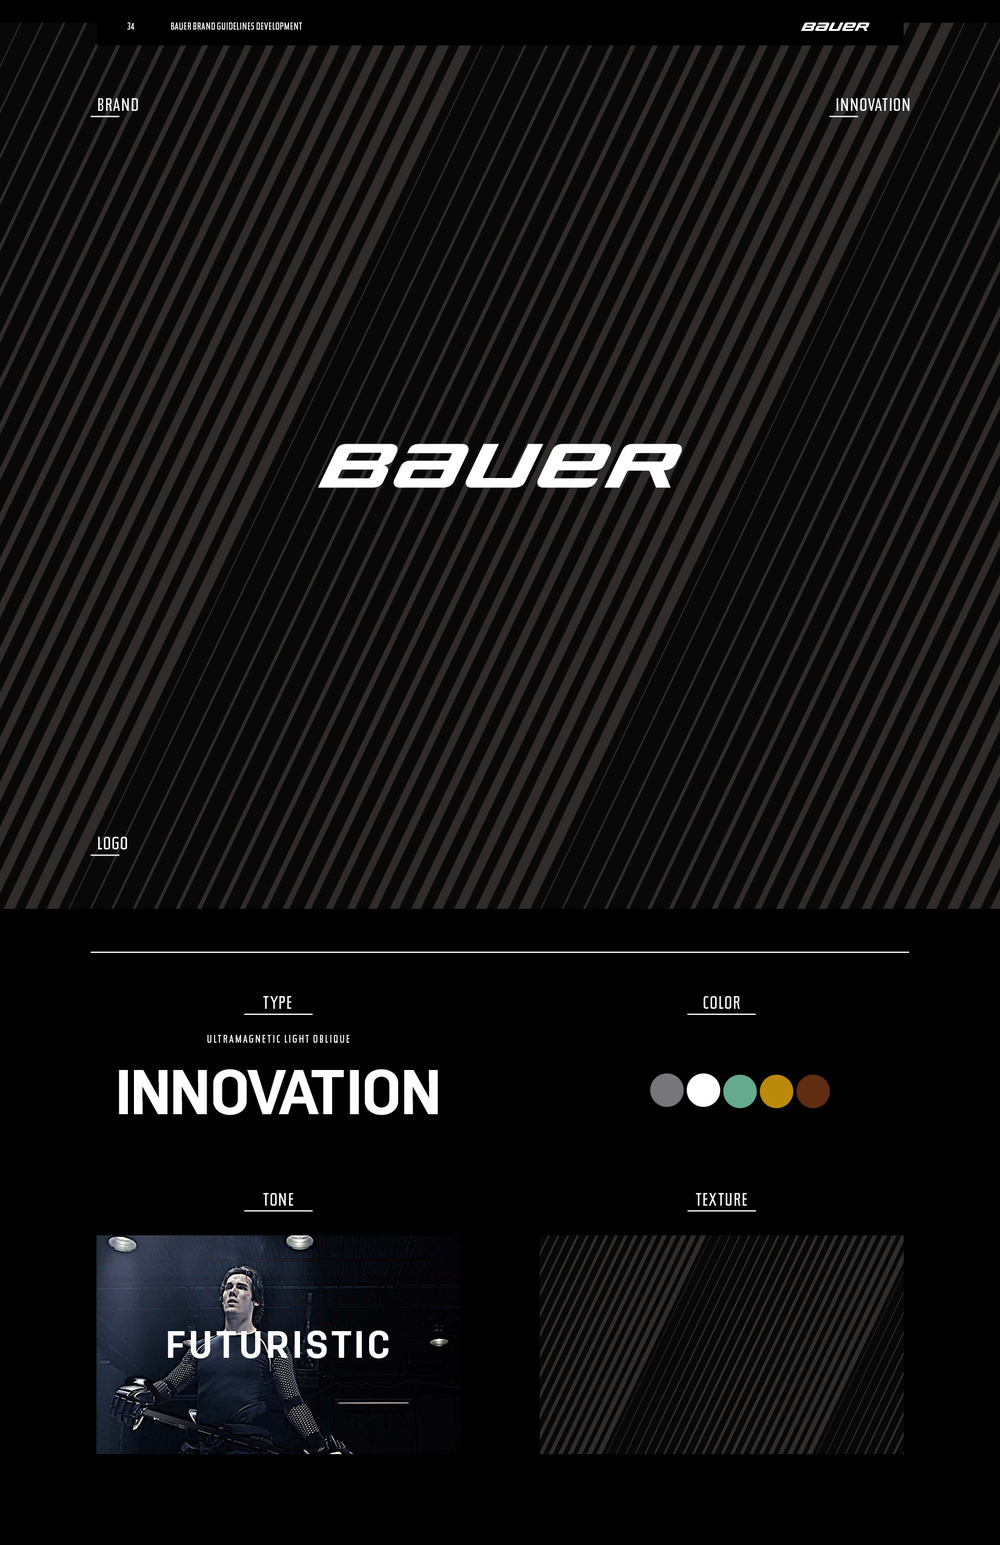 bauer_toolkit34.jpg